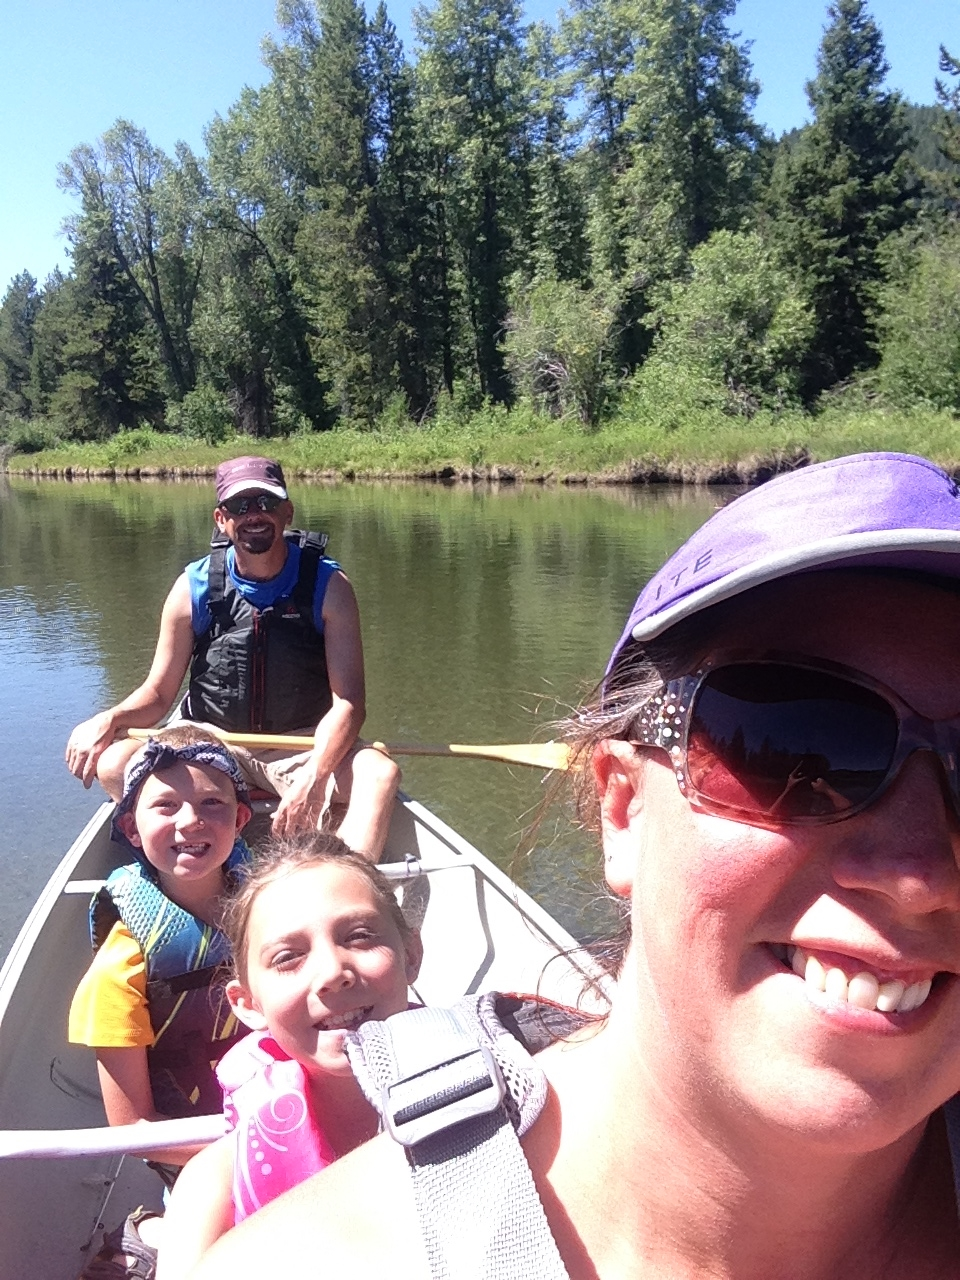 Summer Vacation: Recently, my family camped in Colter Bay Campground in Grand Teton National Park. Pictured here on the Snake River near Oxbow Bend (front to back) is Alicia, my wife; Emily, Wyatt and myself.